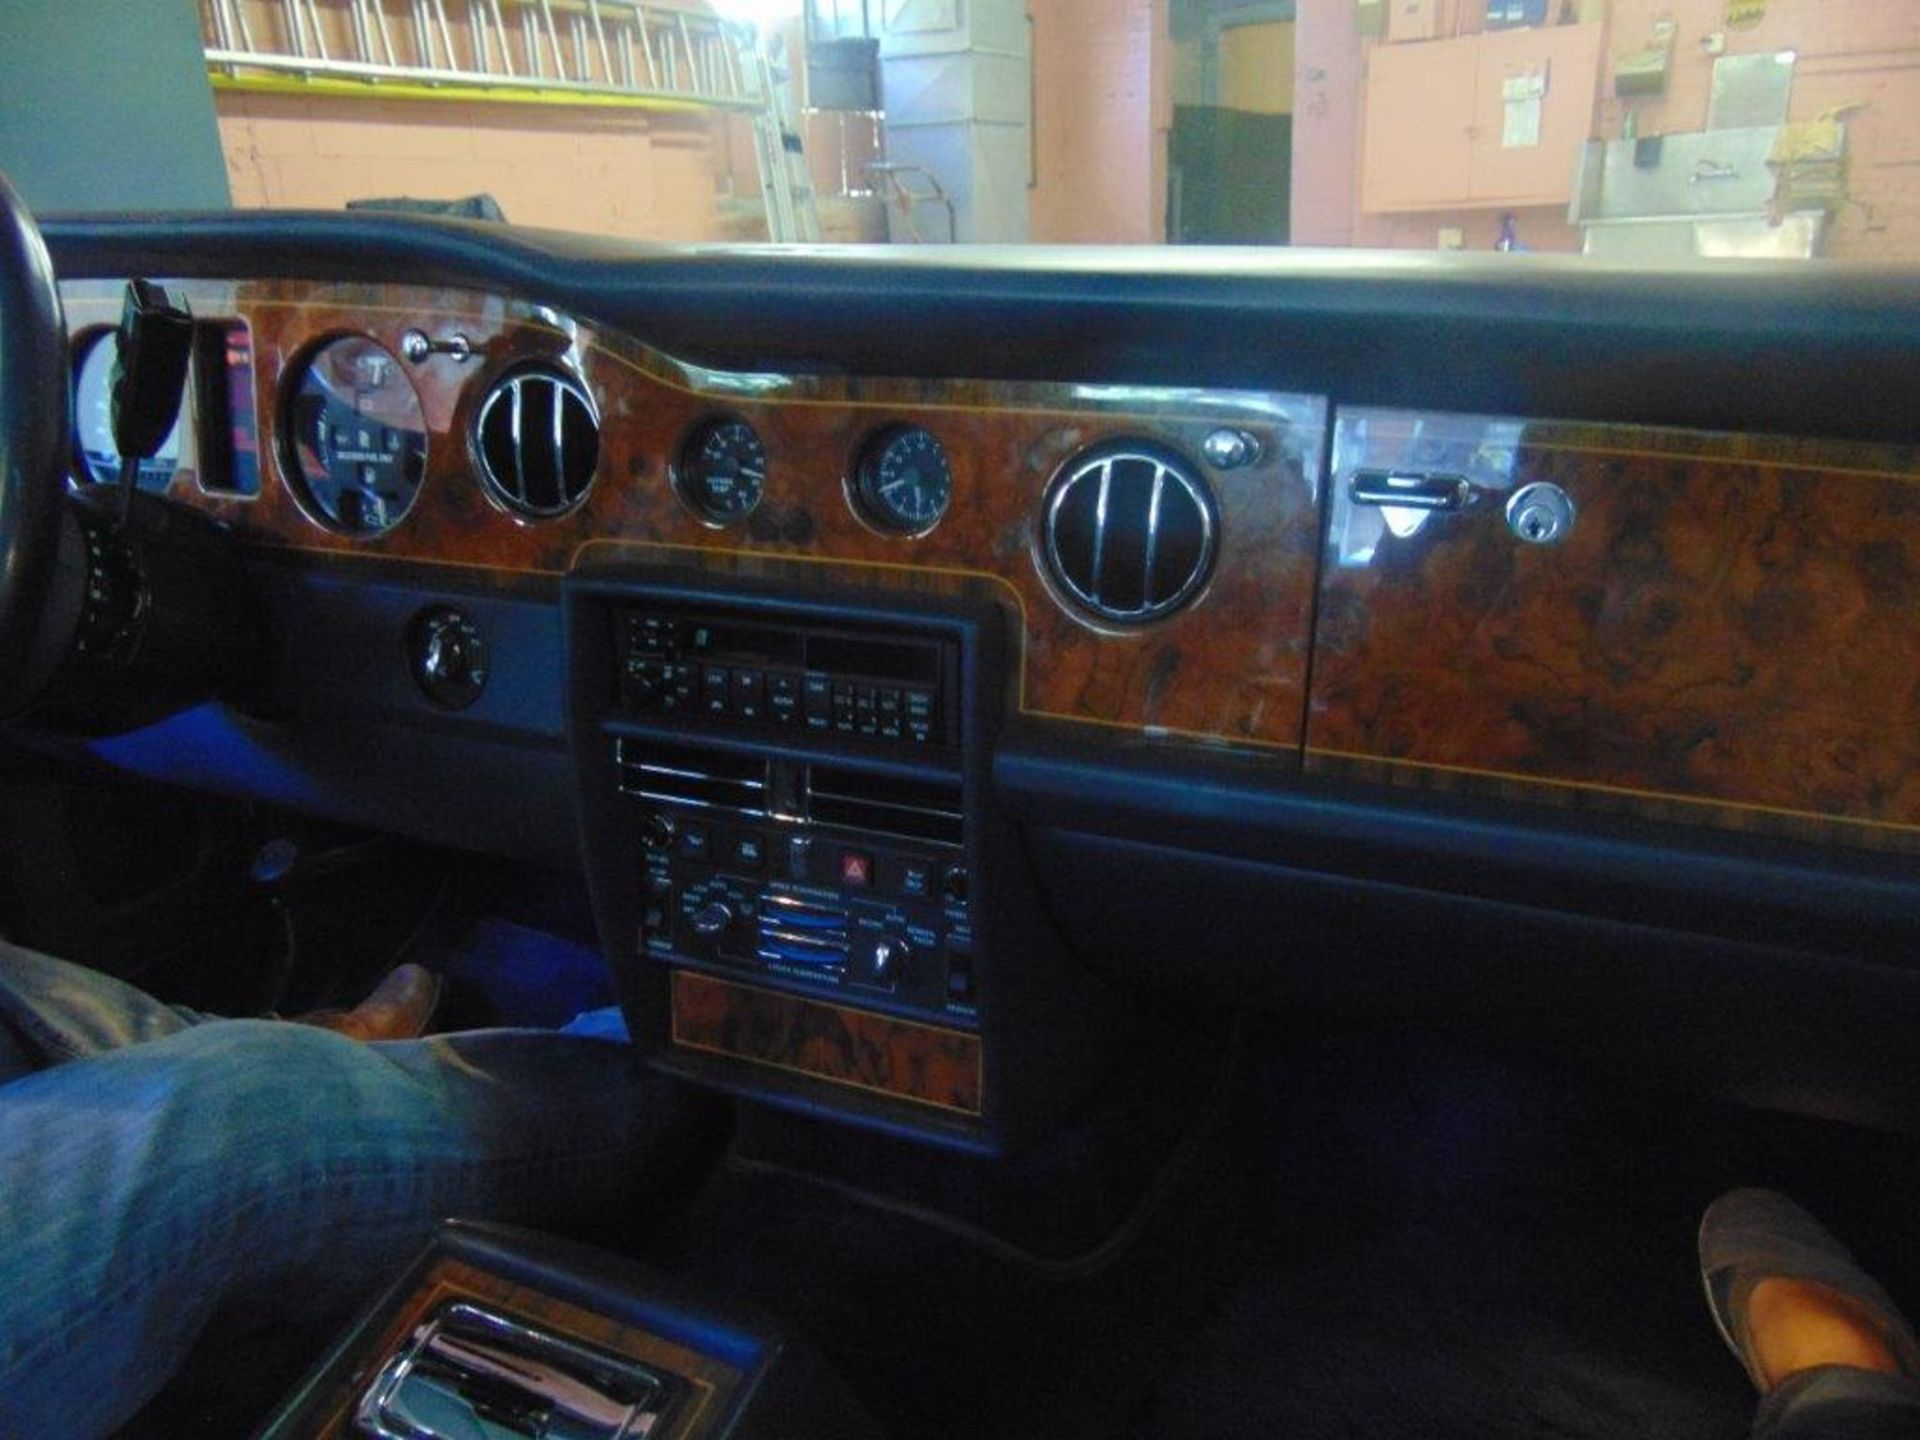 1991 ROLLS-ROYCE SILVER SPIRIT – ROYAL BLUE, 6.8 LIT. AC AND ALL SYSTEMS FULLY FUNCTIONAL, - Image 8 of 11